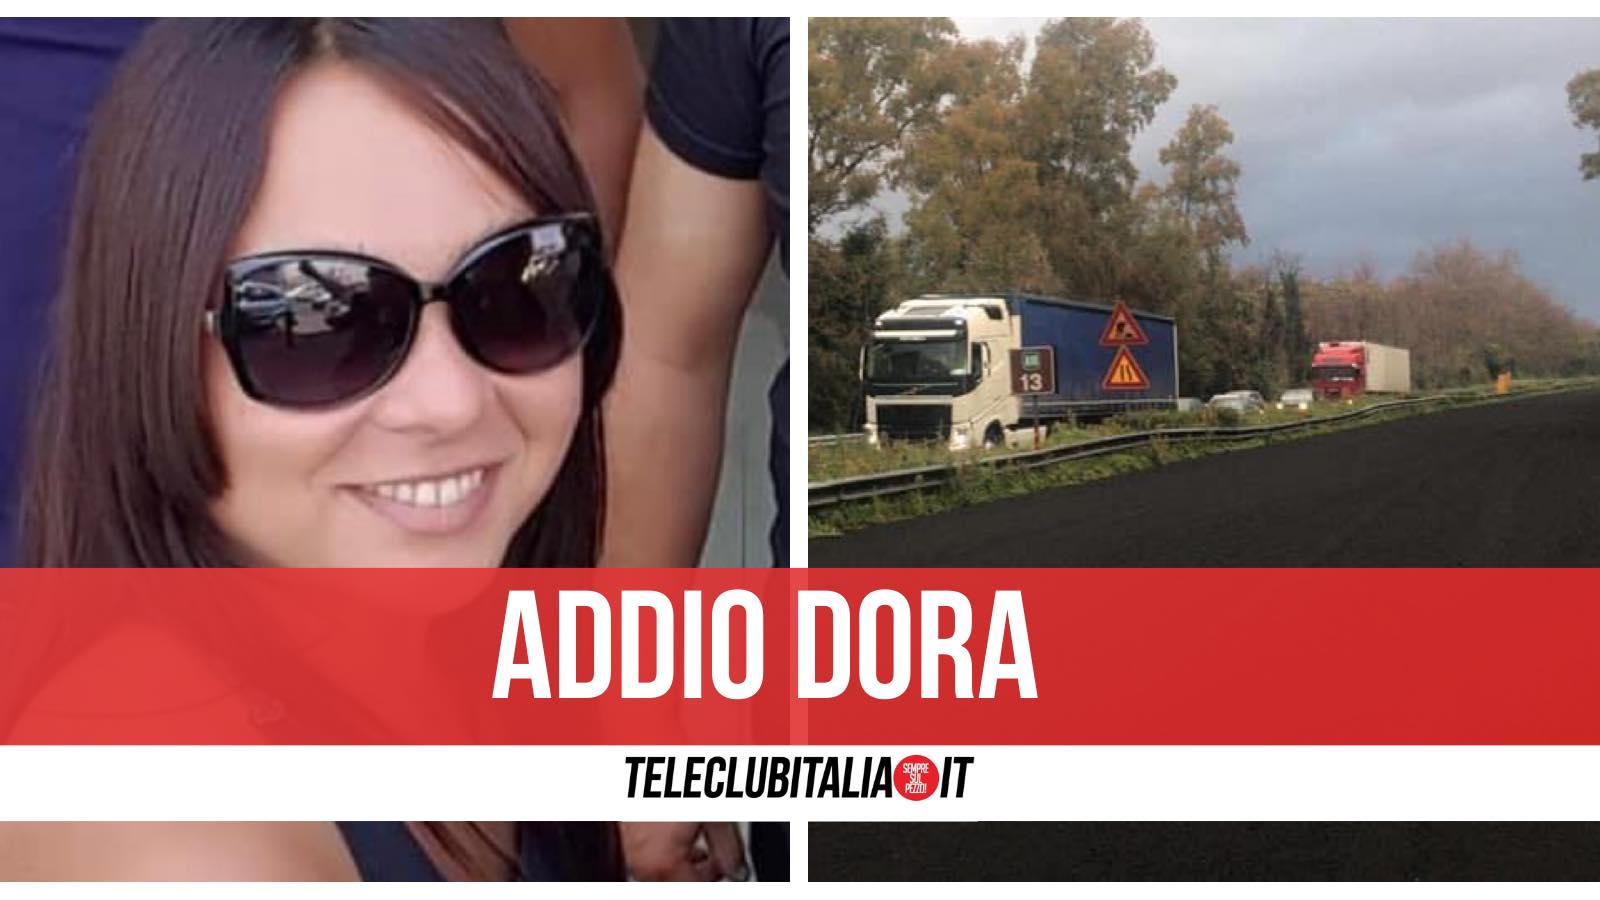 dora sciortino morta mascali incidente